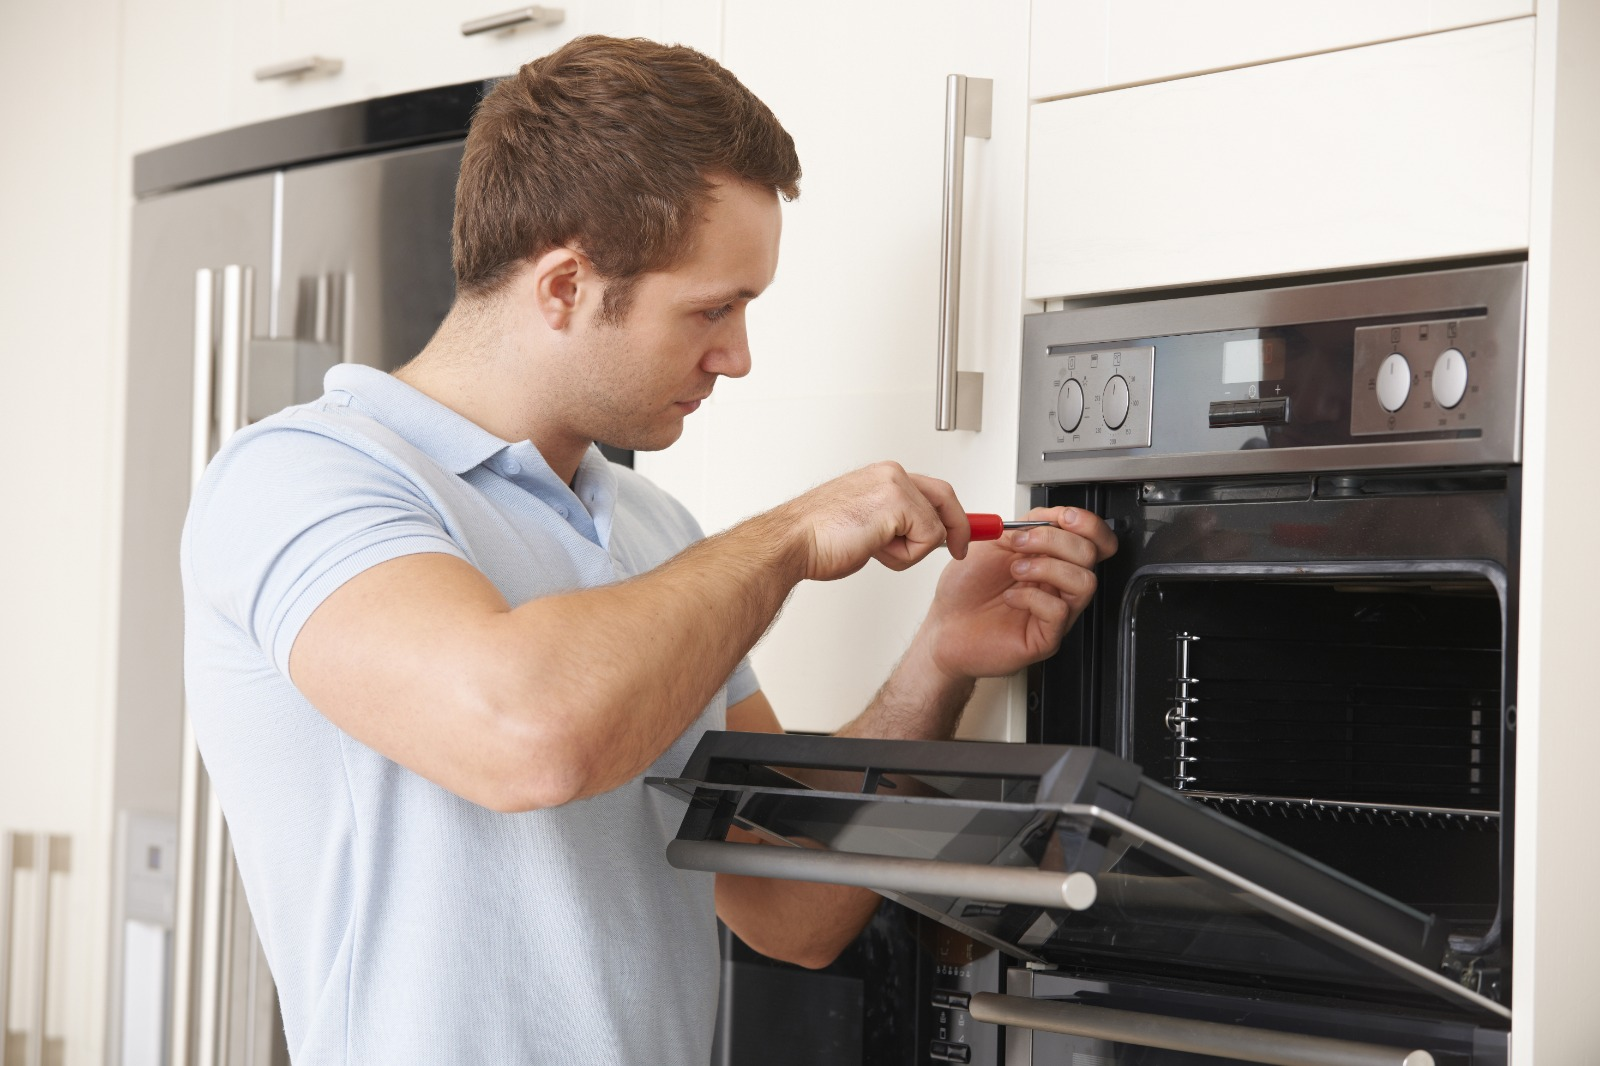 Fixing appliances